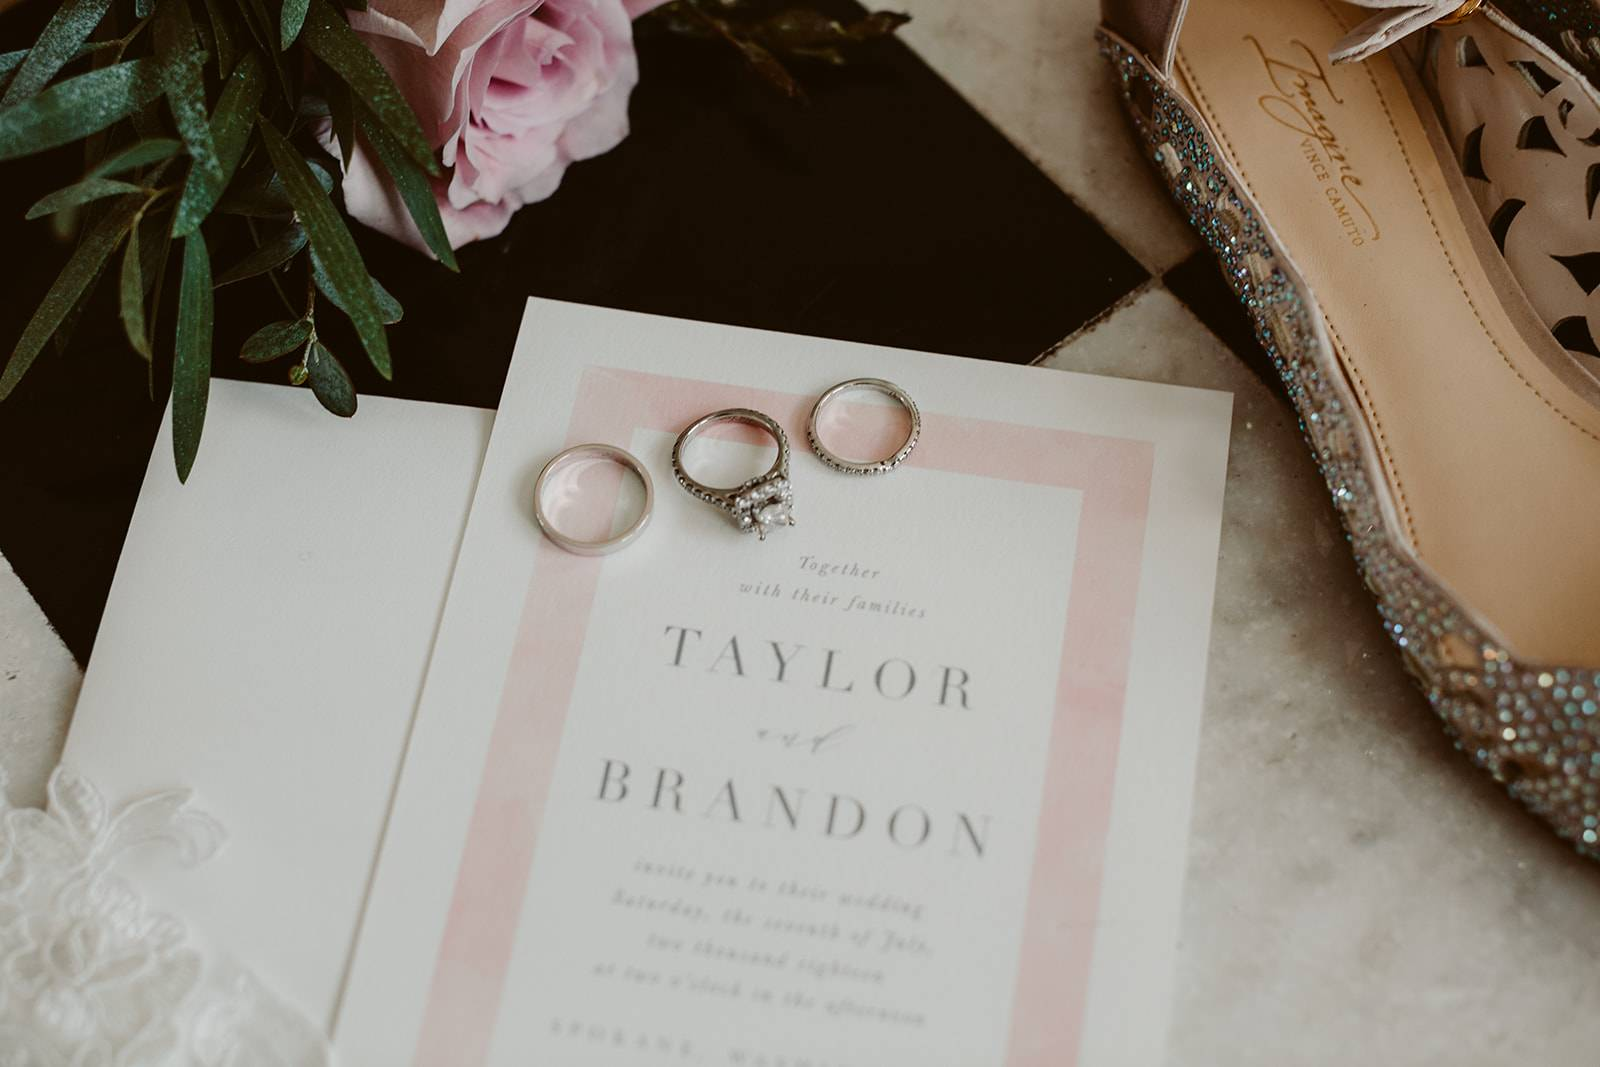 Rings and Blush Invitation on Apple Brides